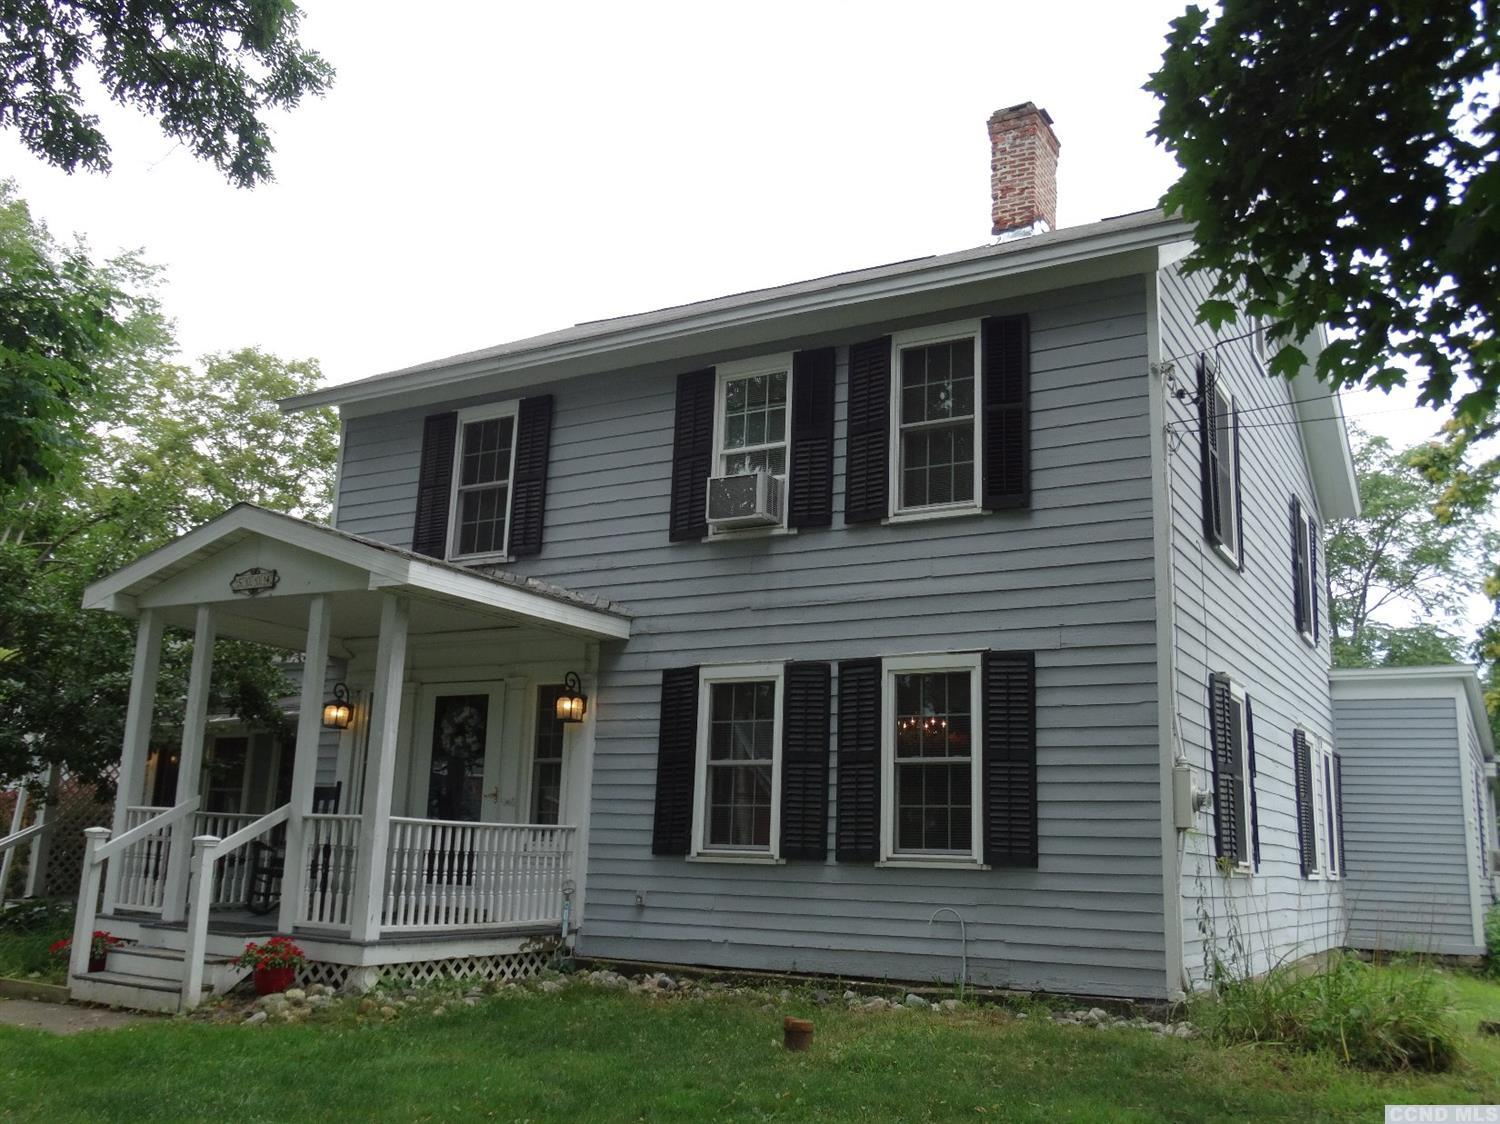 This incredibly maintained, circa 1800 colonial farmhouse was owned by a Vanderbilt family. President Martin Van Buren once stayed here. Enjoy the lovely, updated country kitchen with wide plank wood floors and a wood burning stove. The library has built-in shelves and a decorative fireplace. The formal dining room has a beautiful chandelier, ornate details and fireplace is ready for entertaining. The finished attic has a bedroom and sitting room. Be creative in the indoor 1st floor workshop. Relax on the huge wrap around covered deck, overlooking the cleared and wooded yard, with 3 outbuildings on 4 acres. Newer Pella windows, a new 1,000 gallons fiberglass septic tank and new 2nd floor bathroom. Hot tub and some furniture are available fo